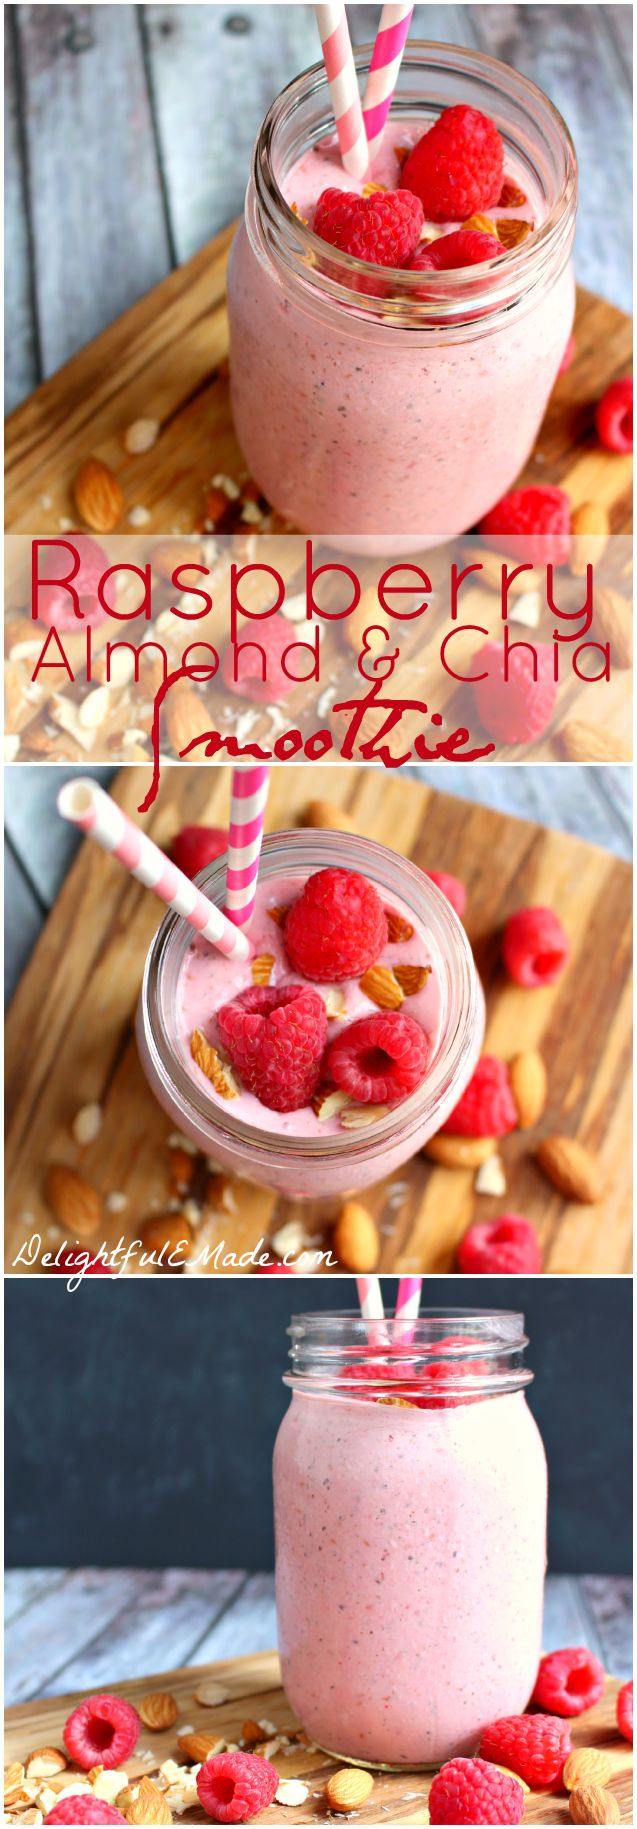 Raspberry Almond Chia Smoothie – Cooking for a Cure (sub with agave, vegan yoghurt)